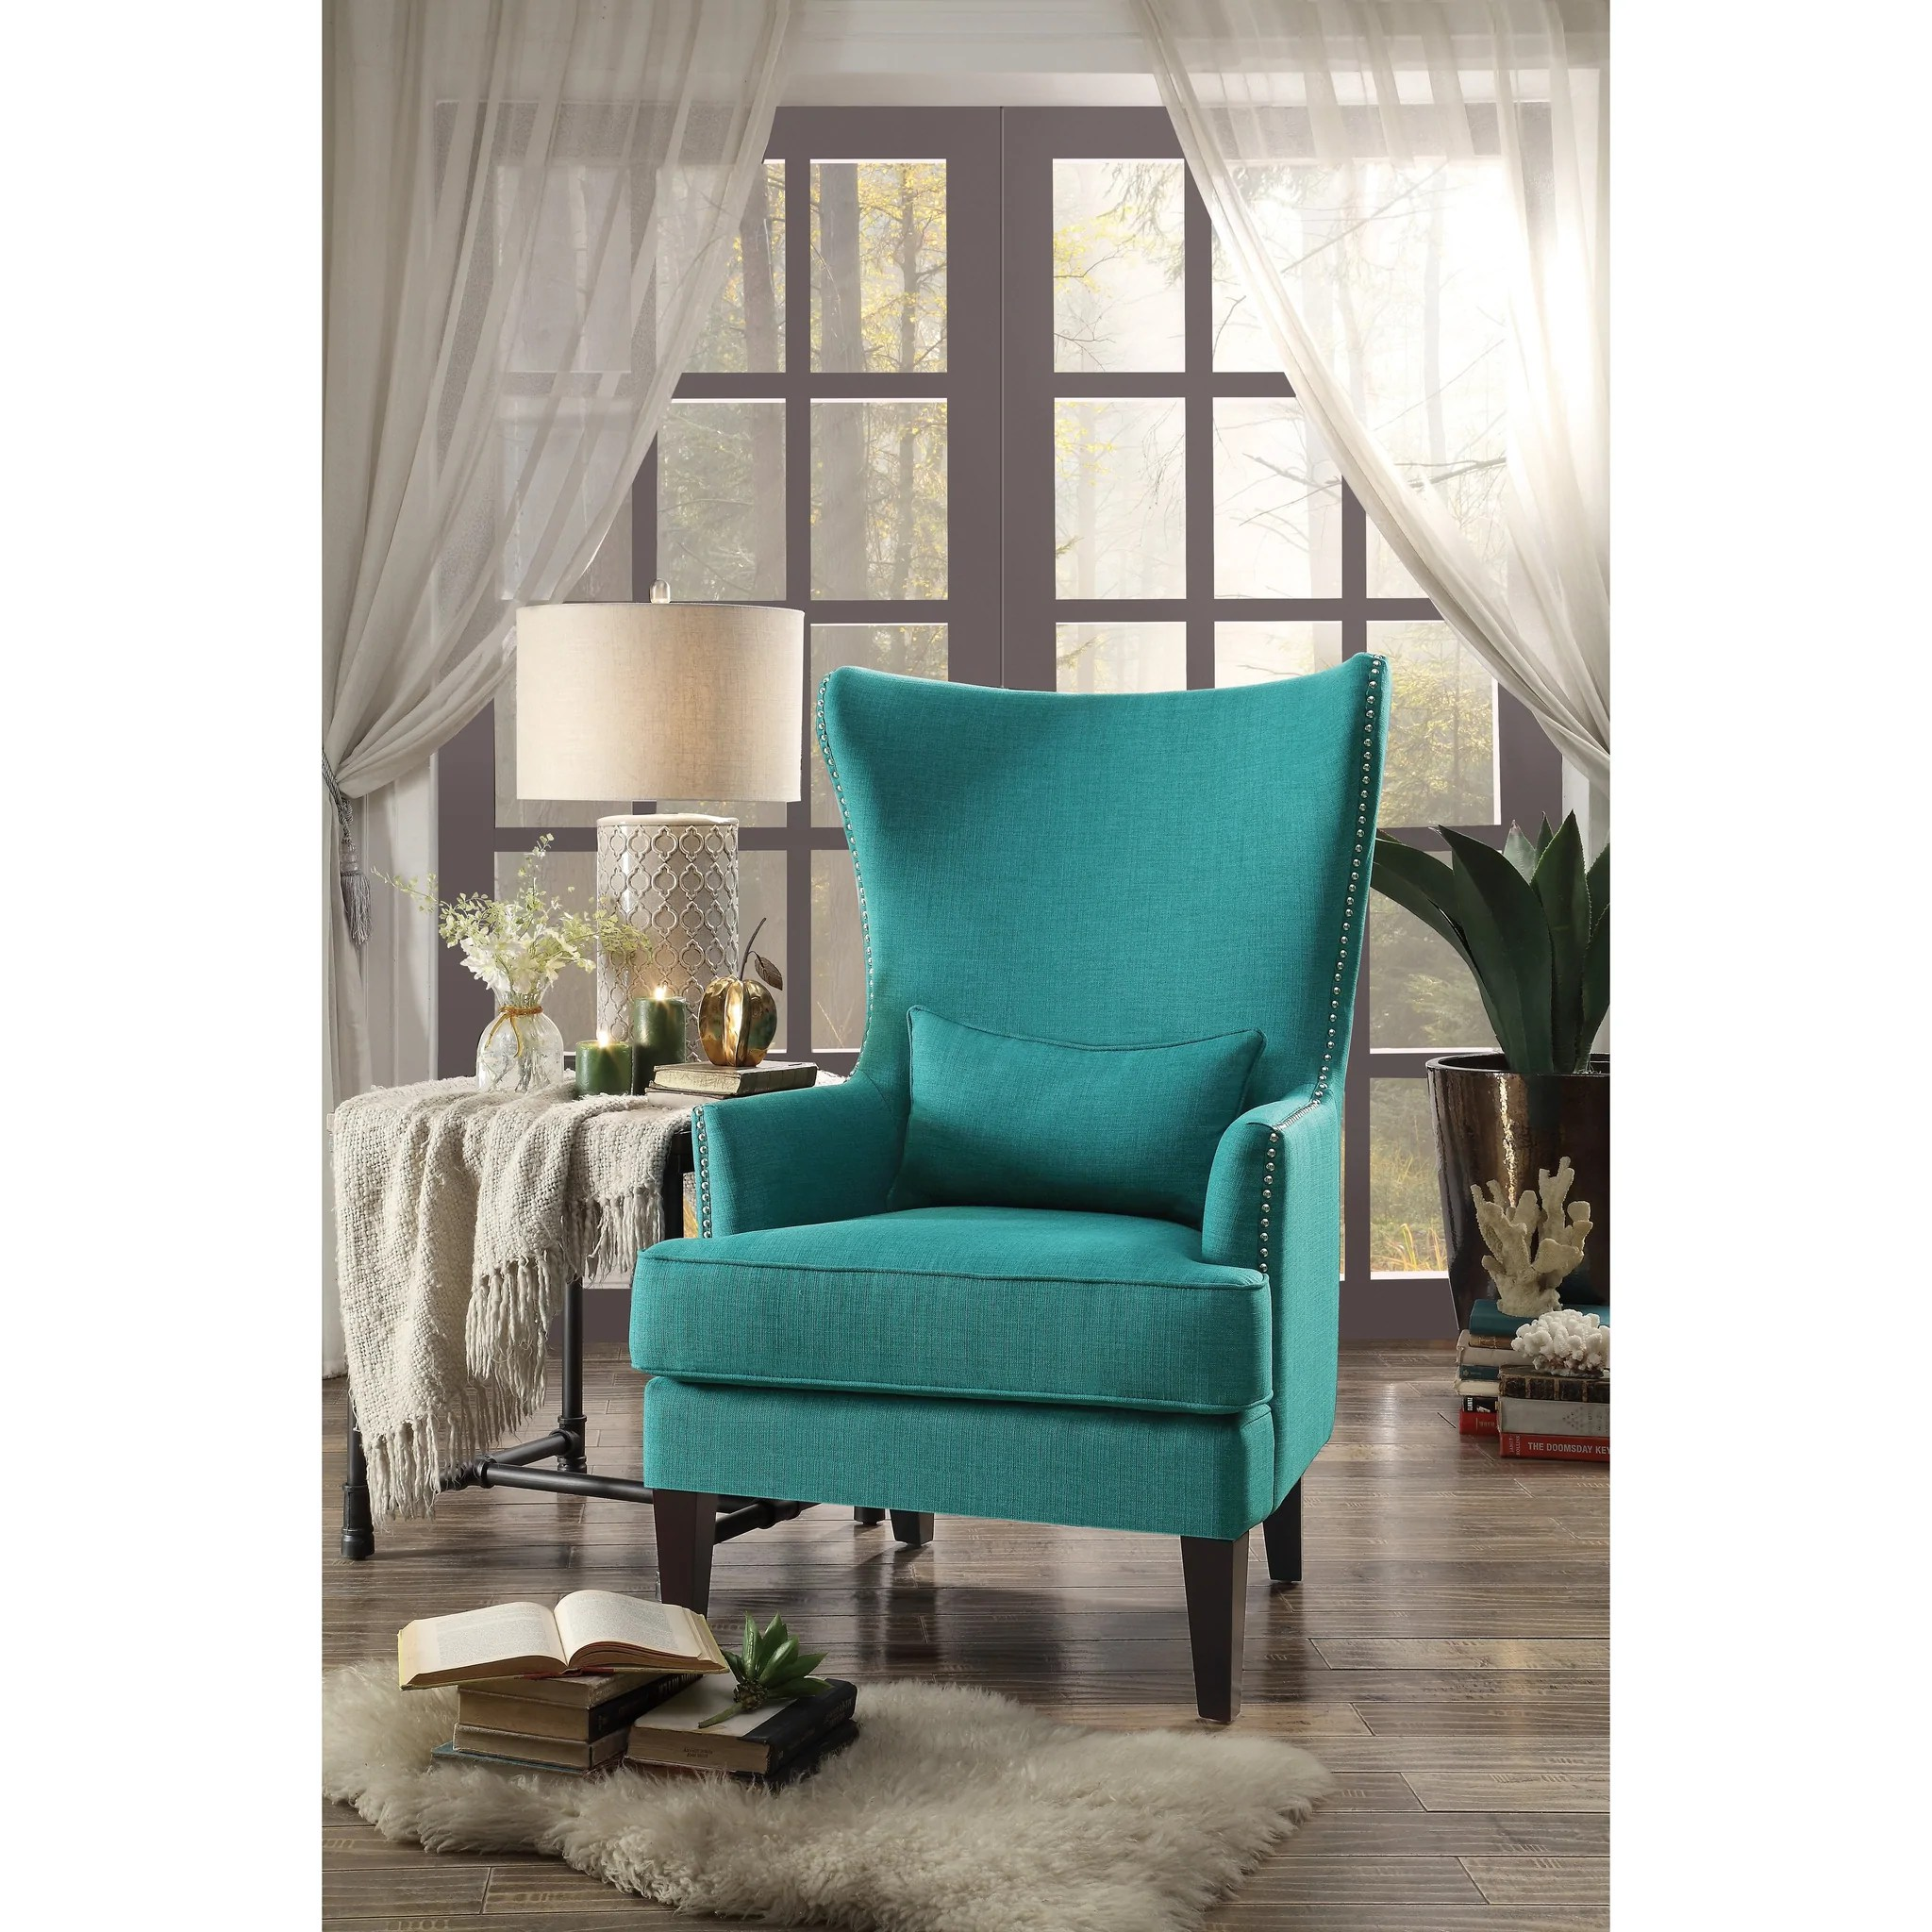 Teal Wingback Chair Avina Teal Wingback Accent Chair With Kidney Pillow 1296 Luna